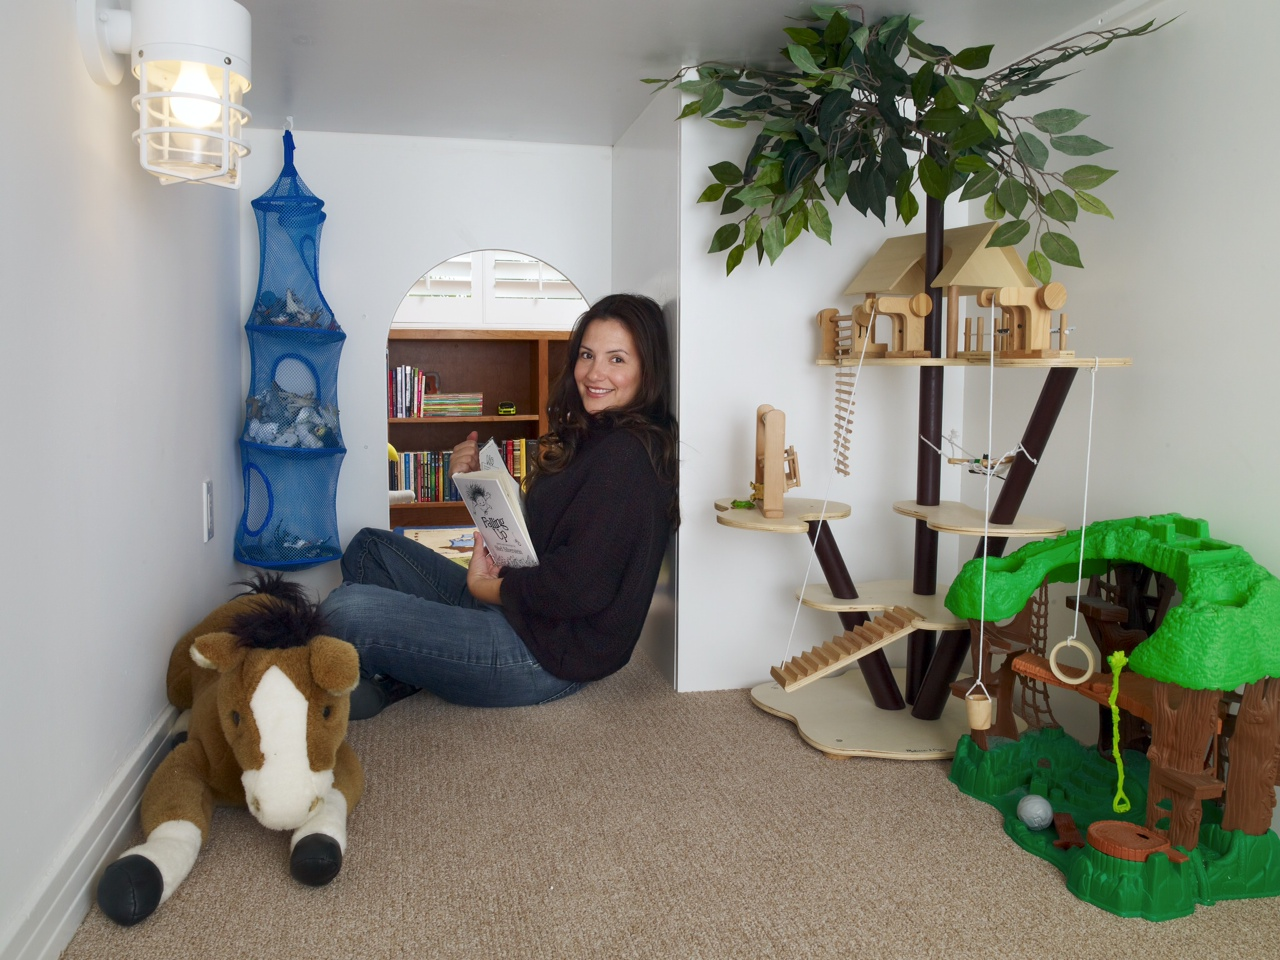 Designer Erica Islas grabs a book inside the lower space of the Palisades Kids' Room, showing it's big enough for adults as it is for children.